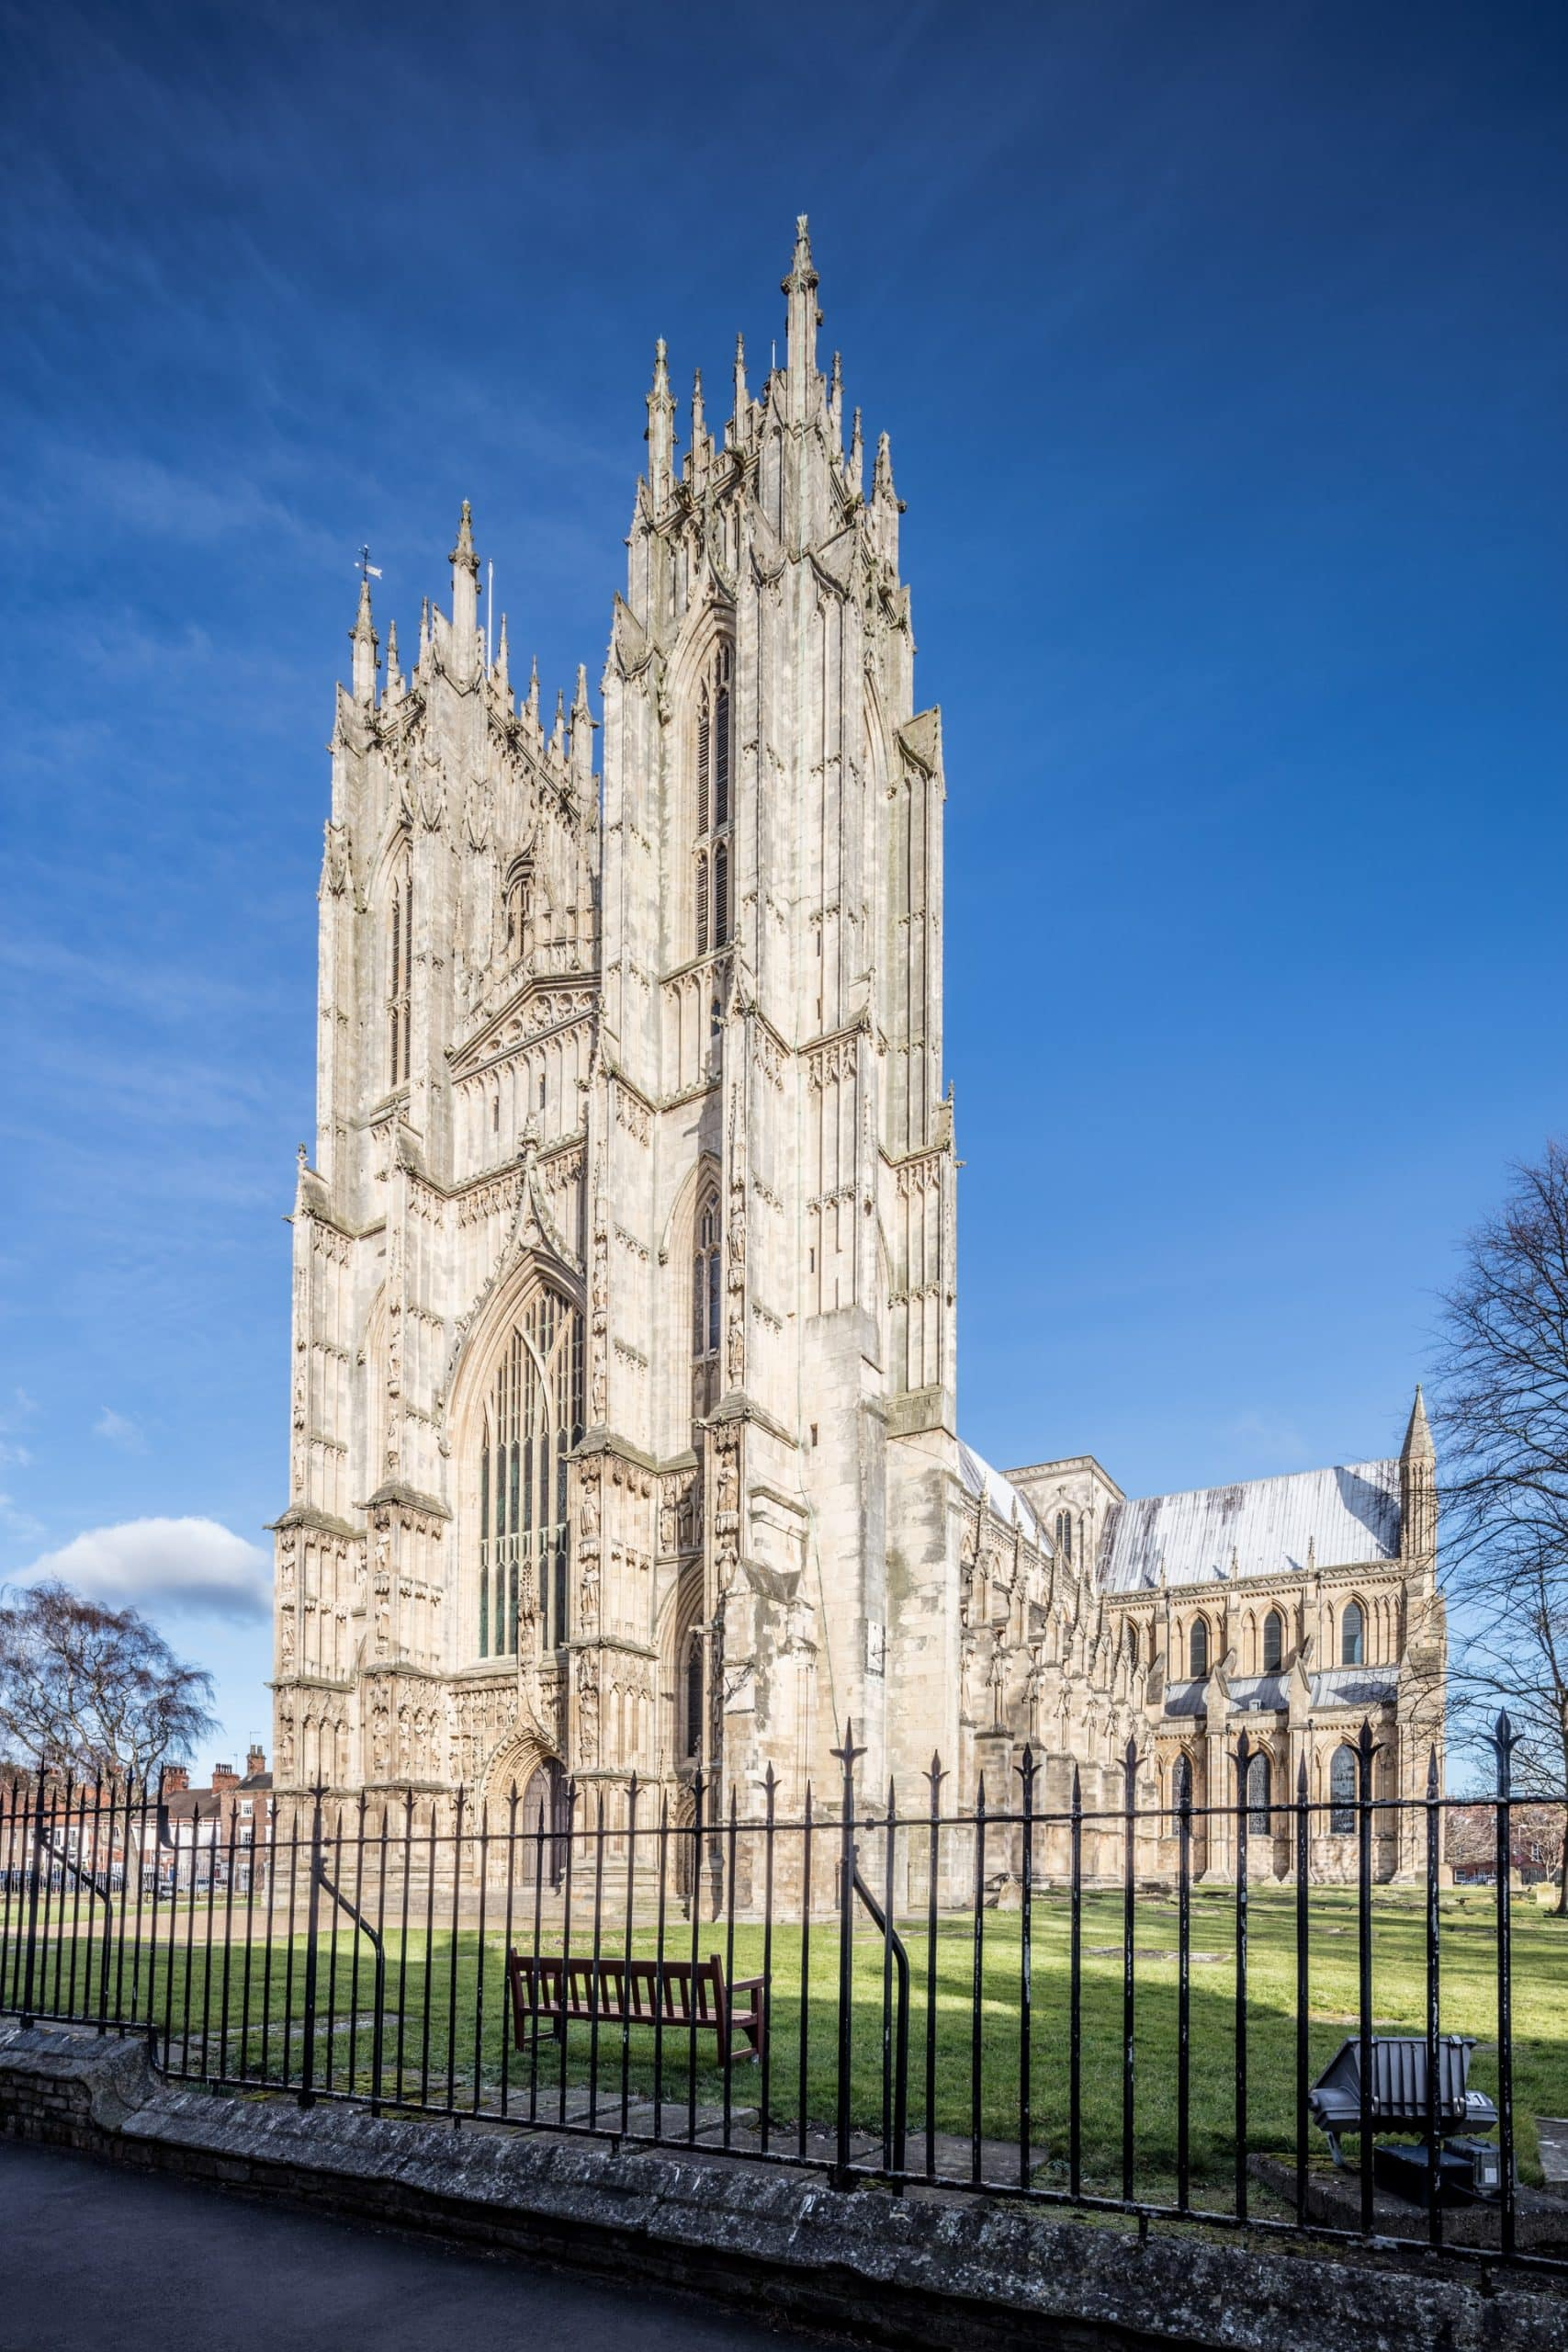 Beverley Minster Cathedral, one of the best things to do and see for free in East Yorkshire